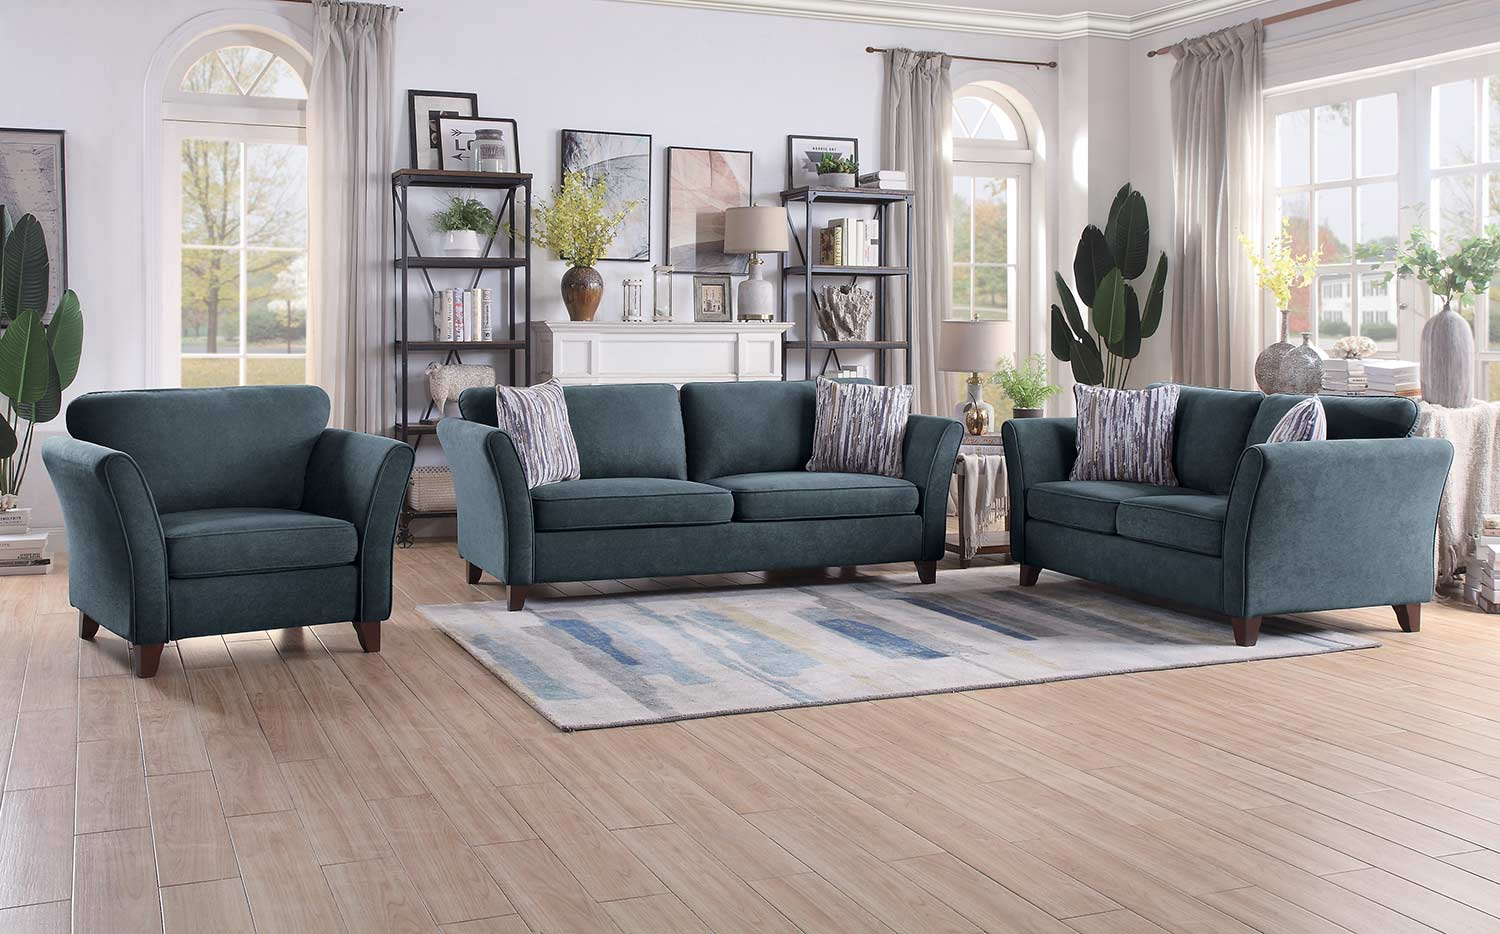 Homelegance Barberton Sofa Set - Dark gray